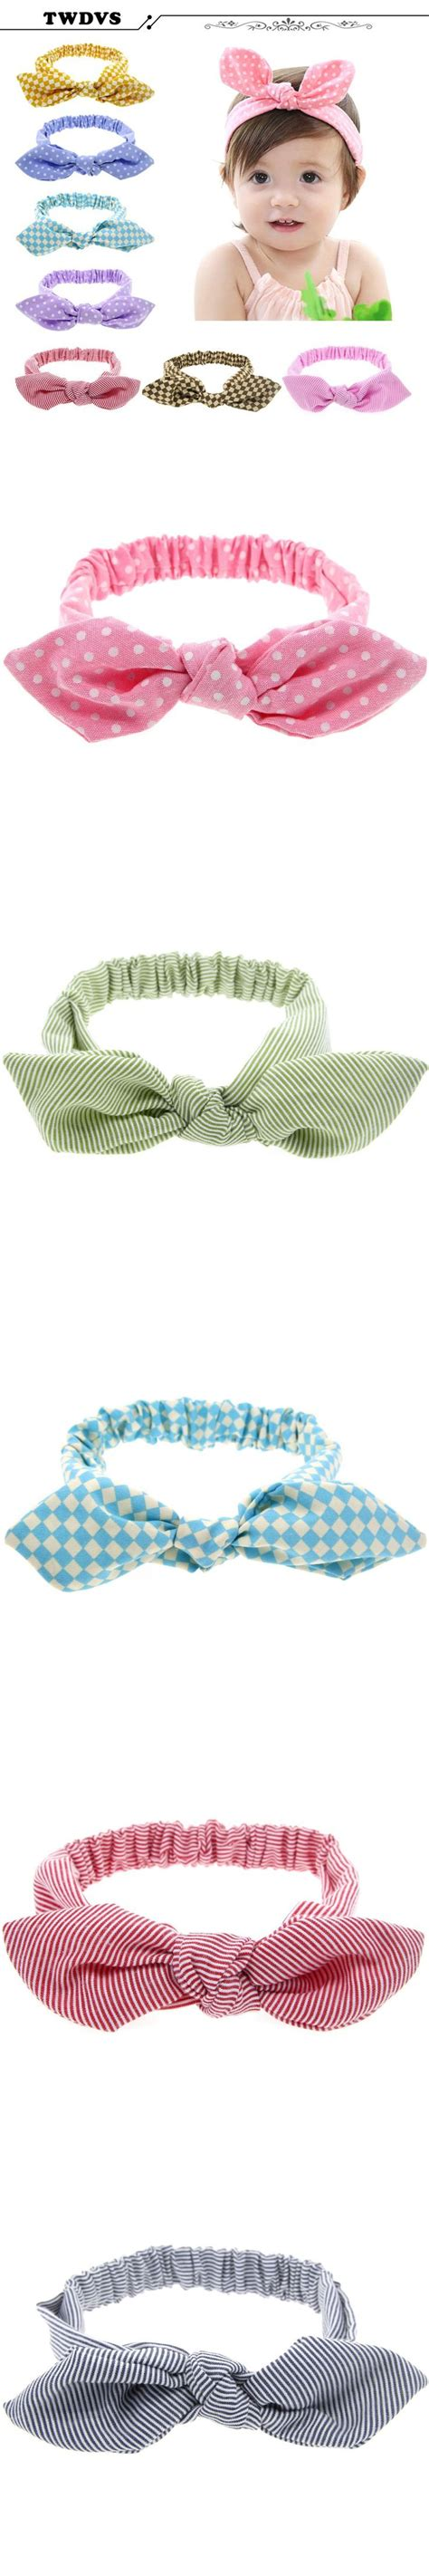 beautiful knotted baby headbands braided baby headbands 17 best ideas about headband styles on braided